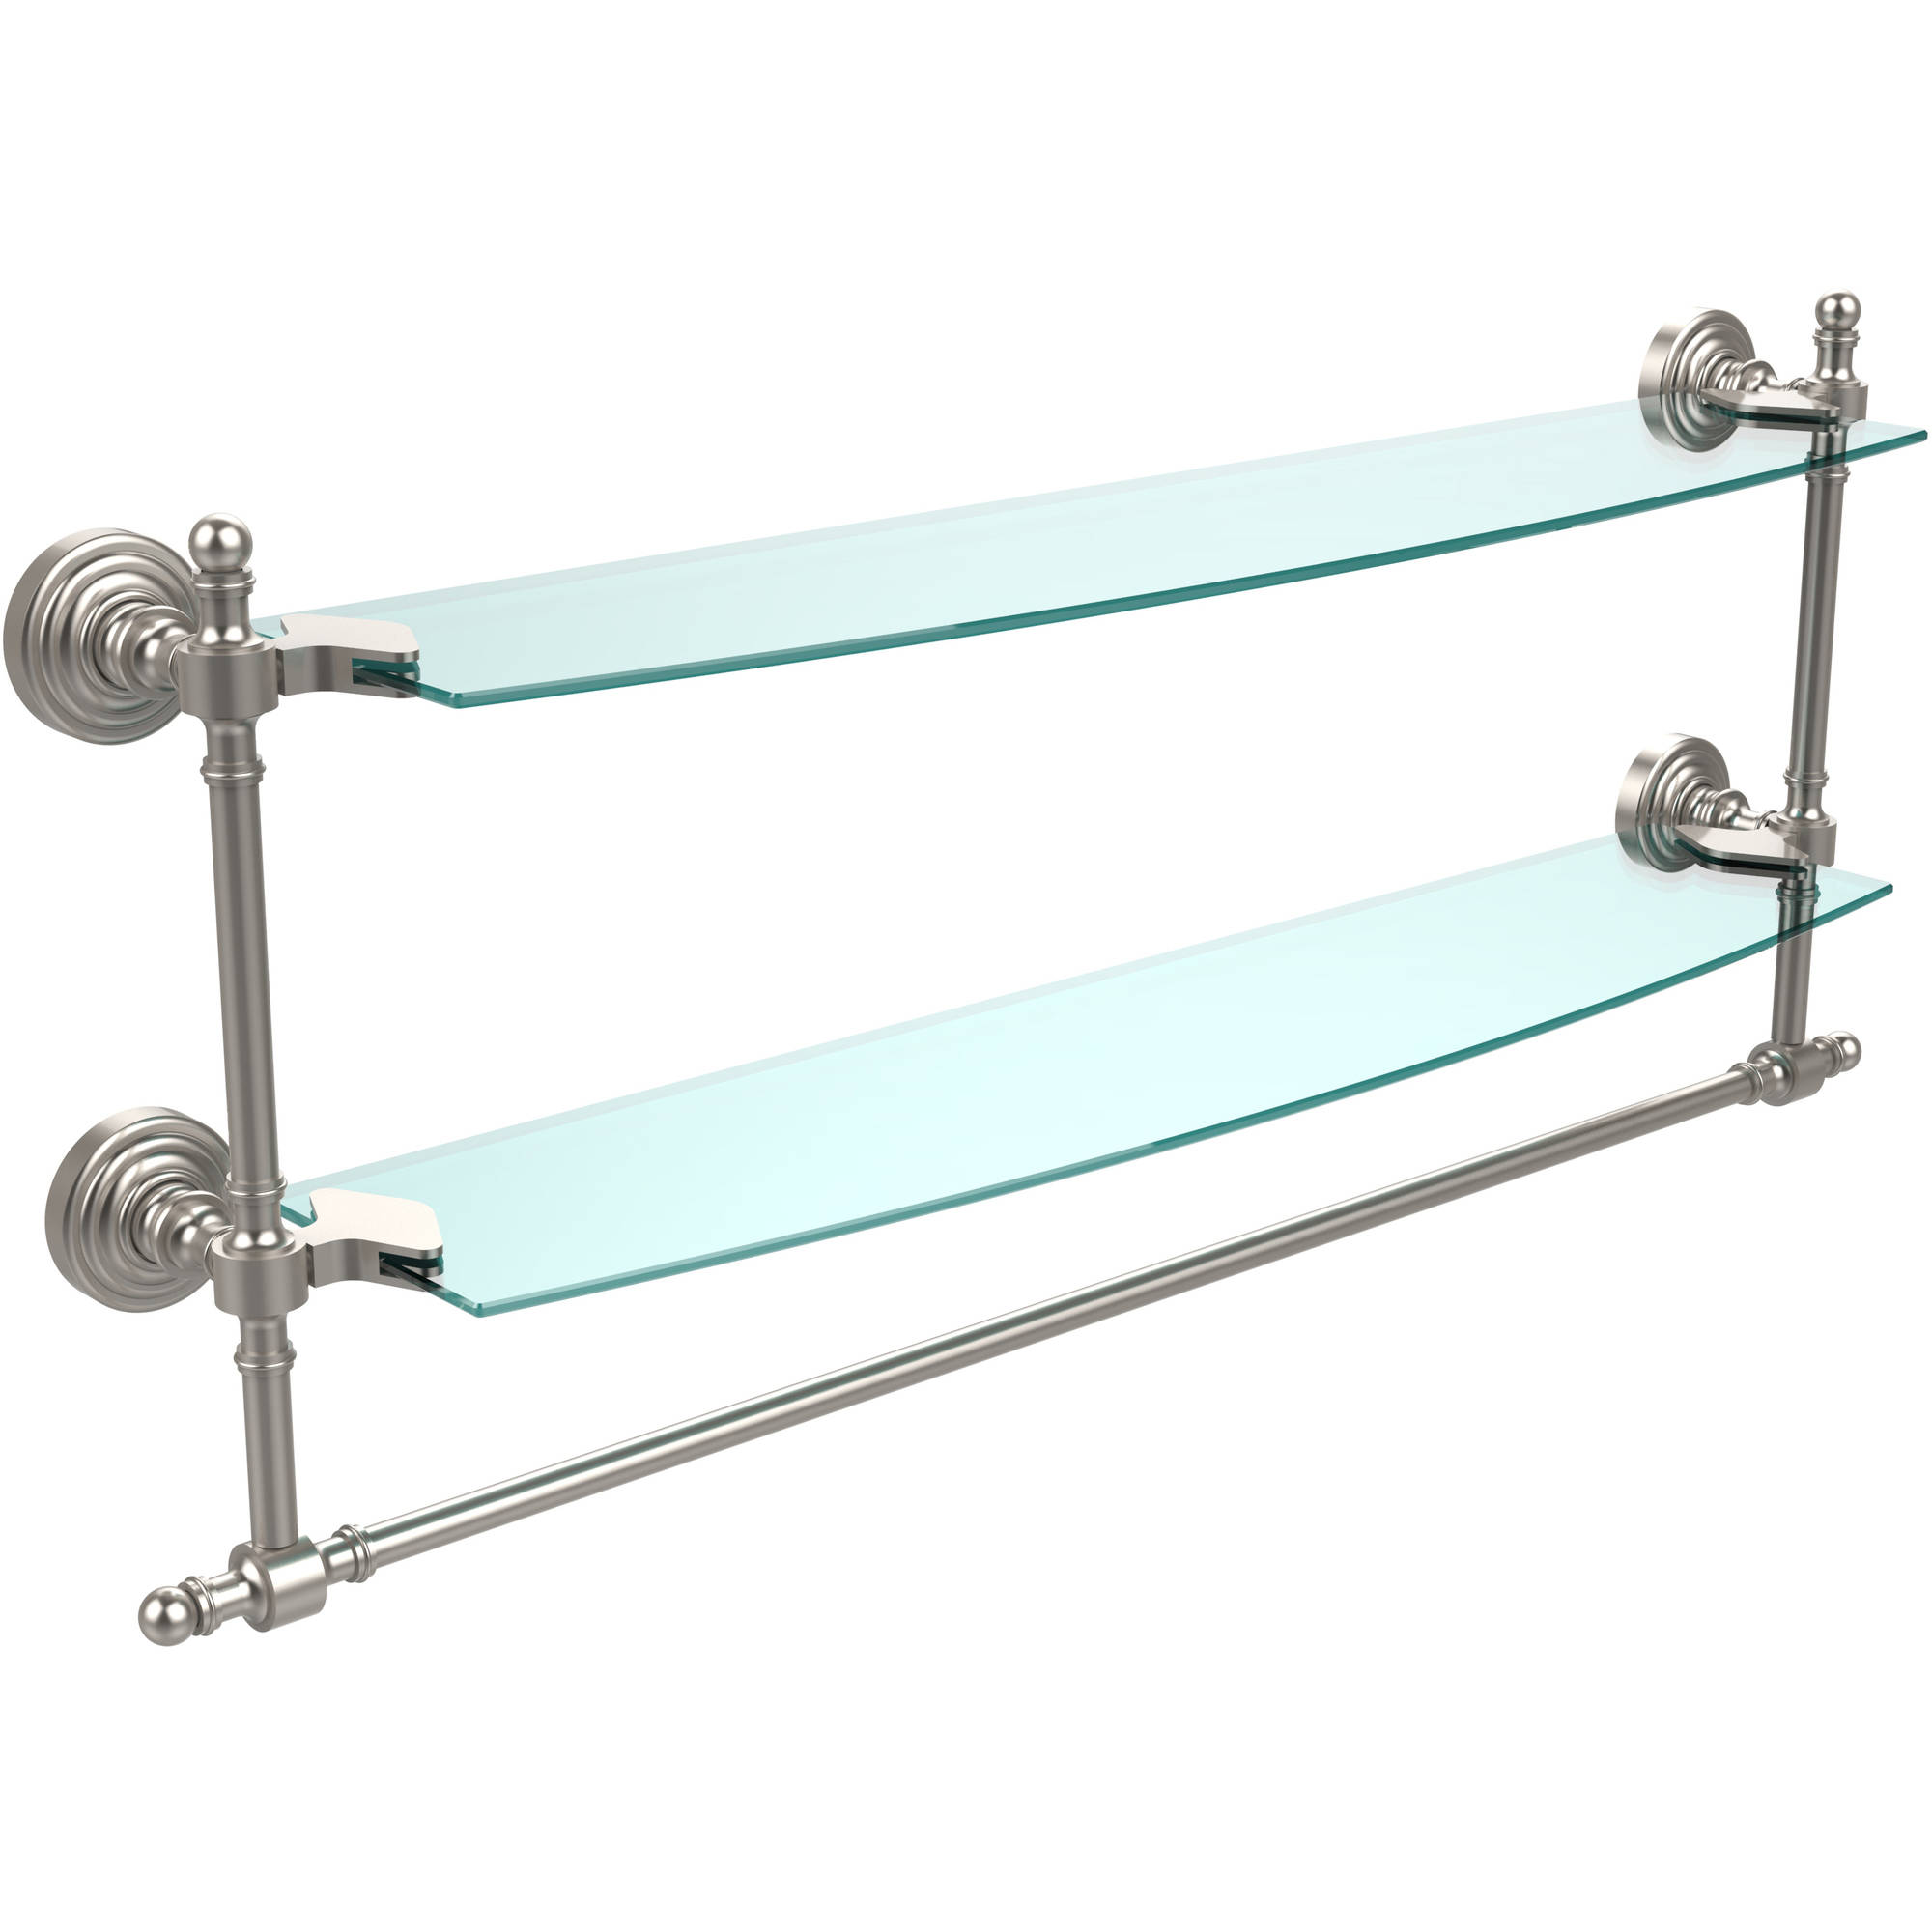 "Retro Wave Collection 24"" 2-Tiered Glass Shelf with Integrated Towel Bar (Build to Order)"